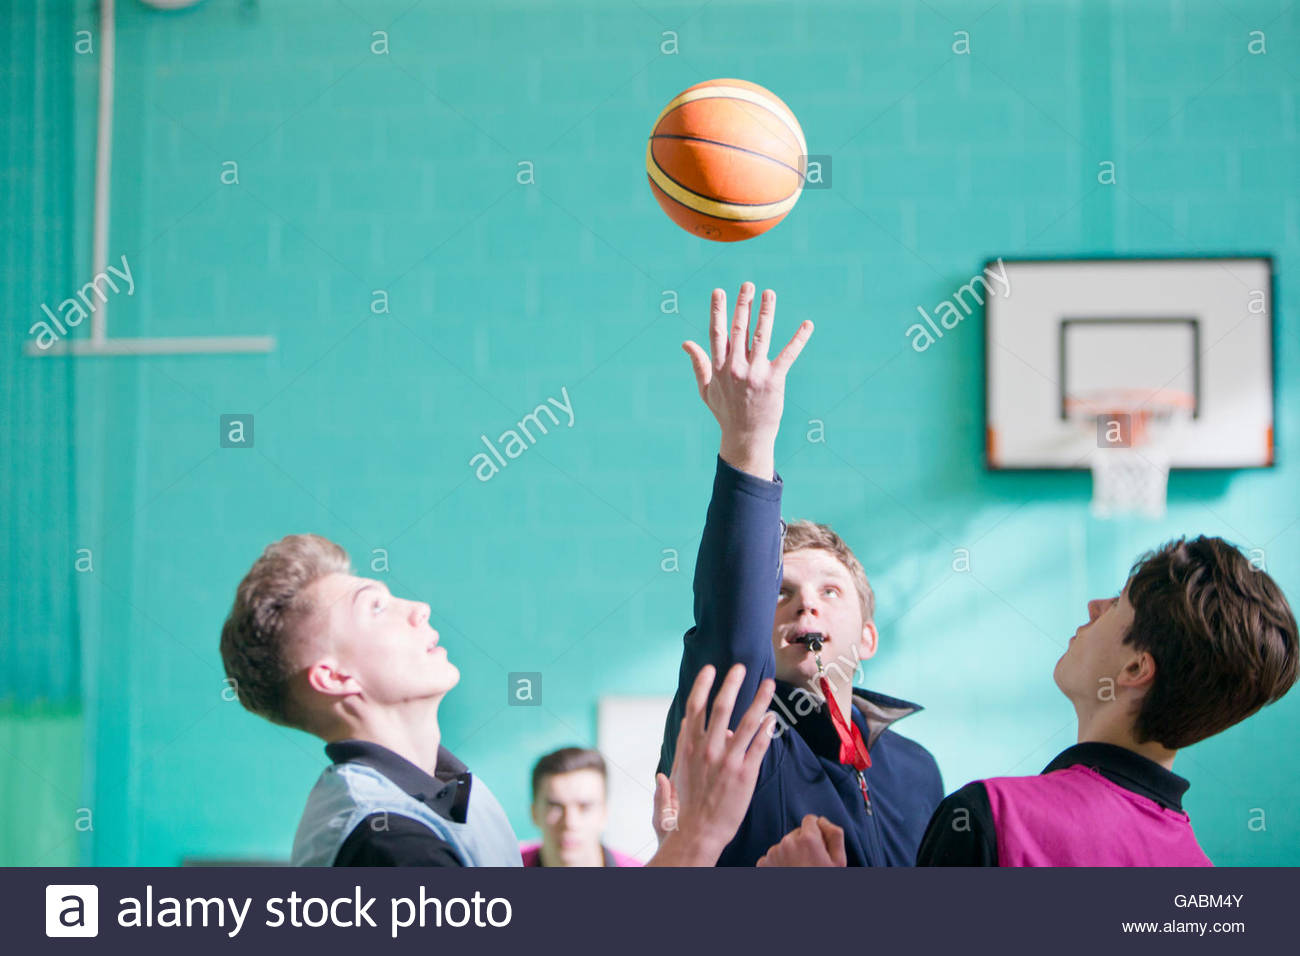 Gym teacher starting high school basketball game with tip off - Stock Image